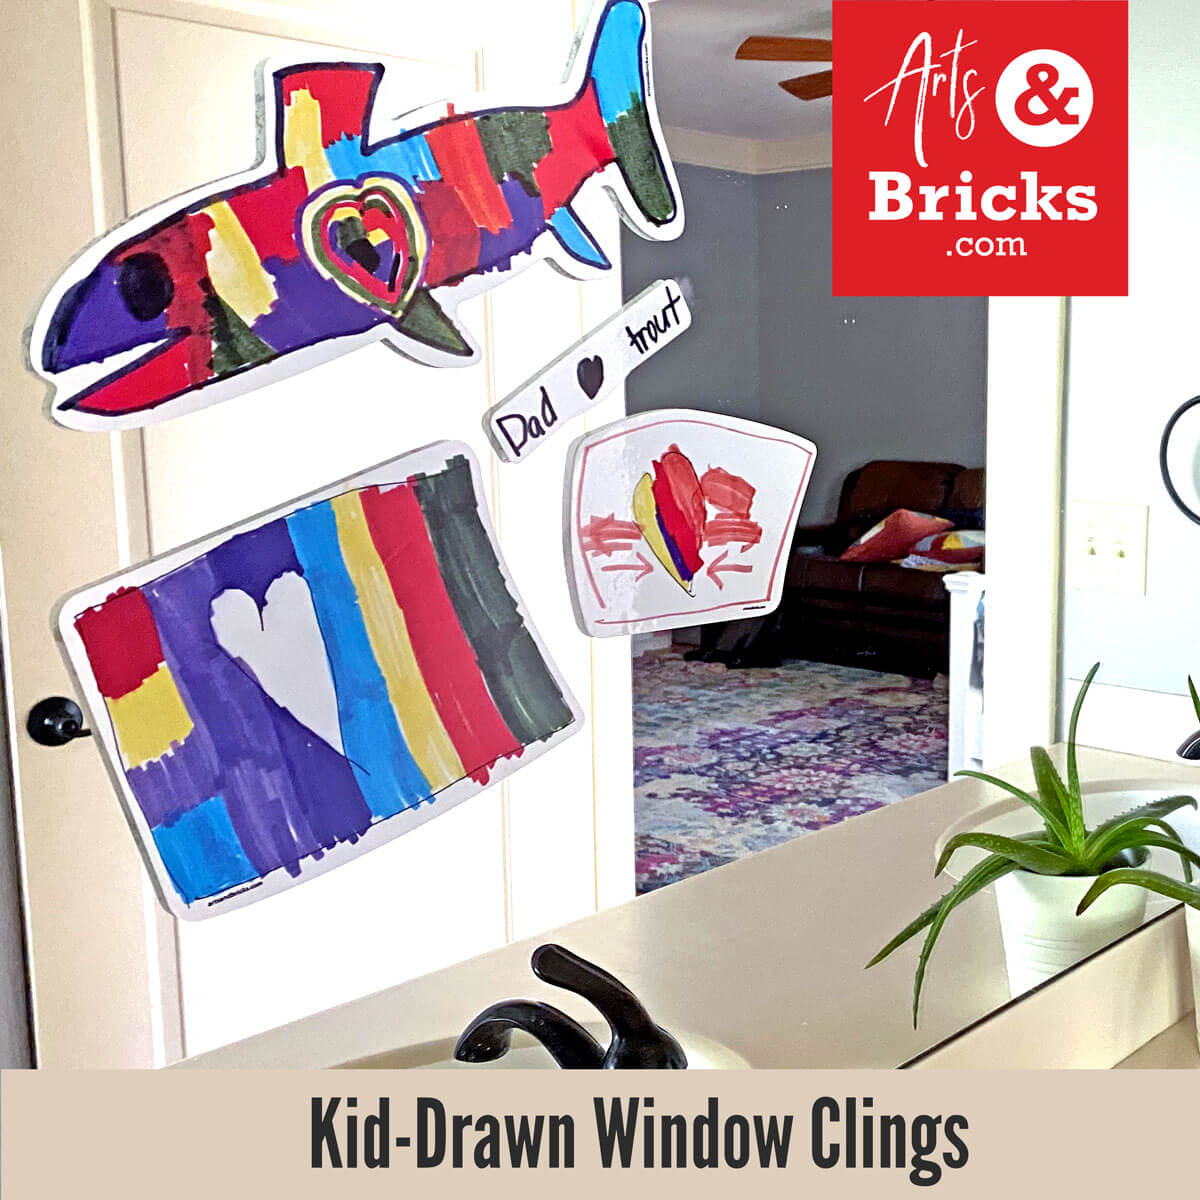 Window clings made from kids artwork for fathers day or as gifts